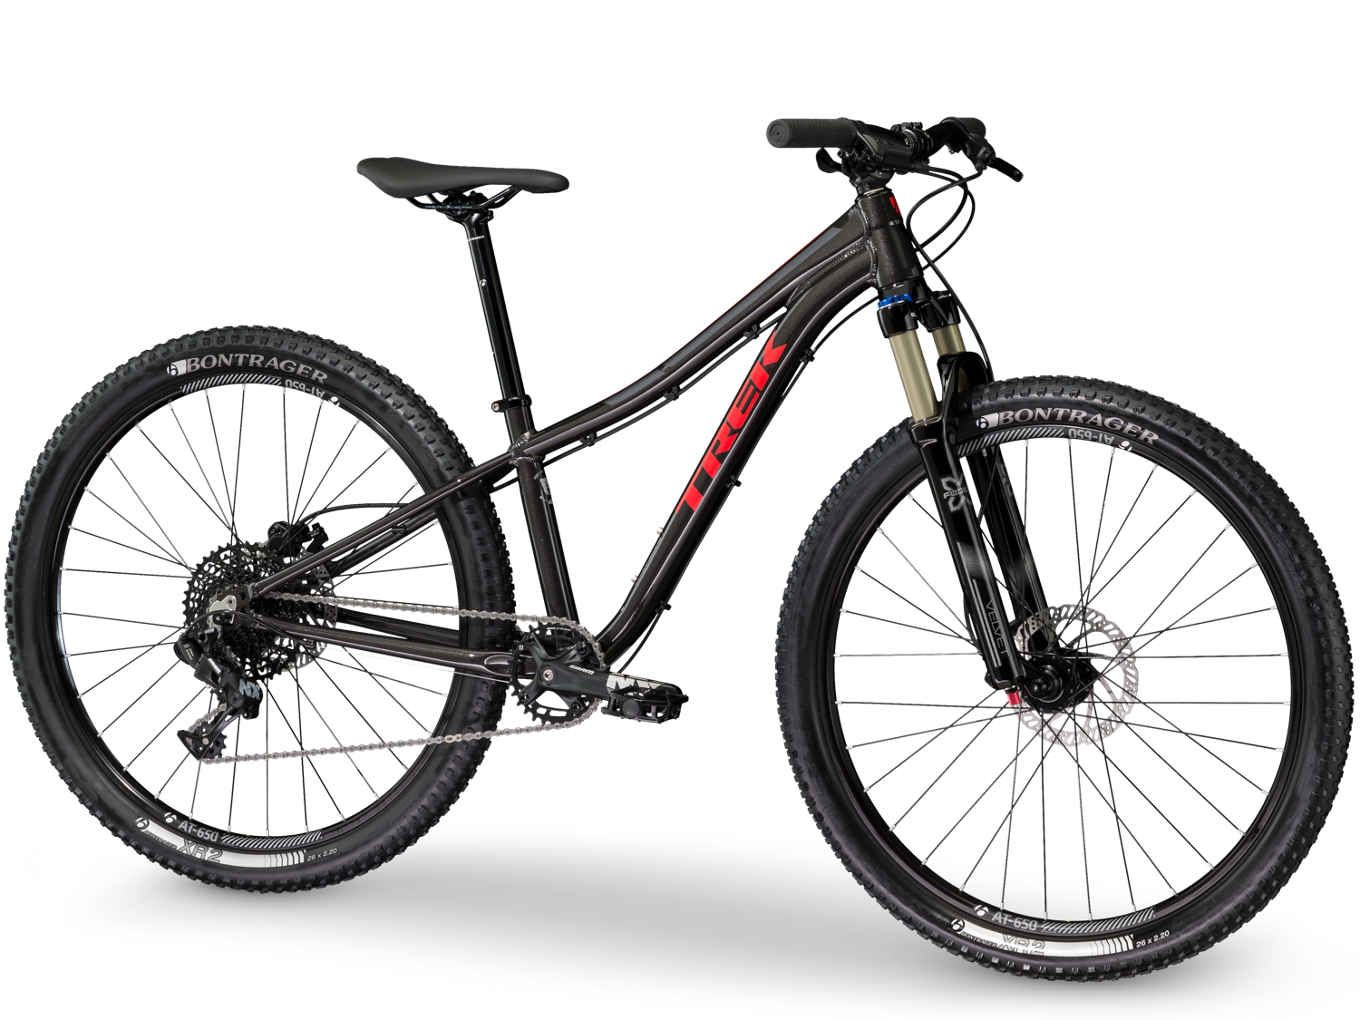 Superfly 26 Trek Bikes Trek Bikes Kids Mountain Bikes Montain Bike